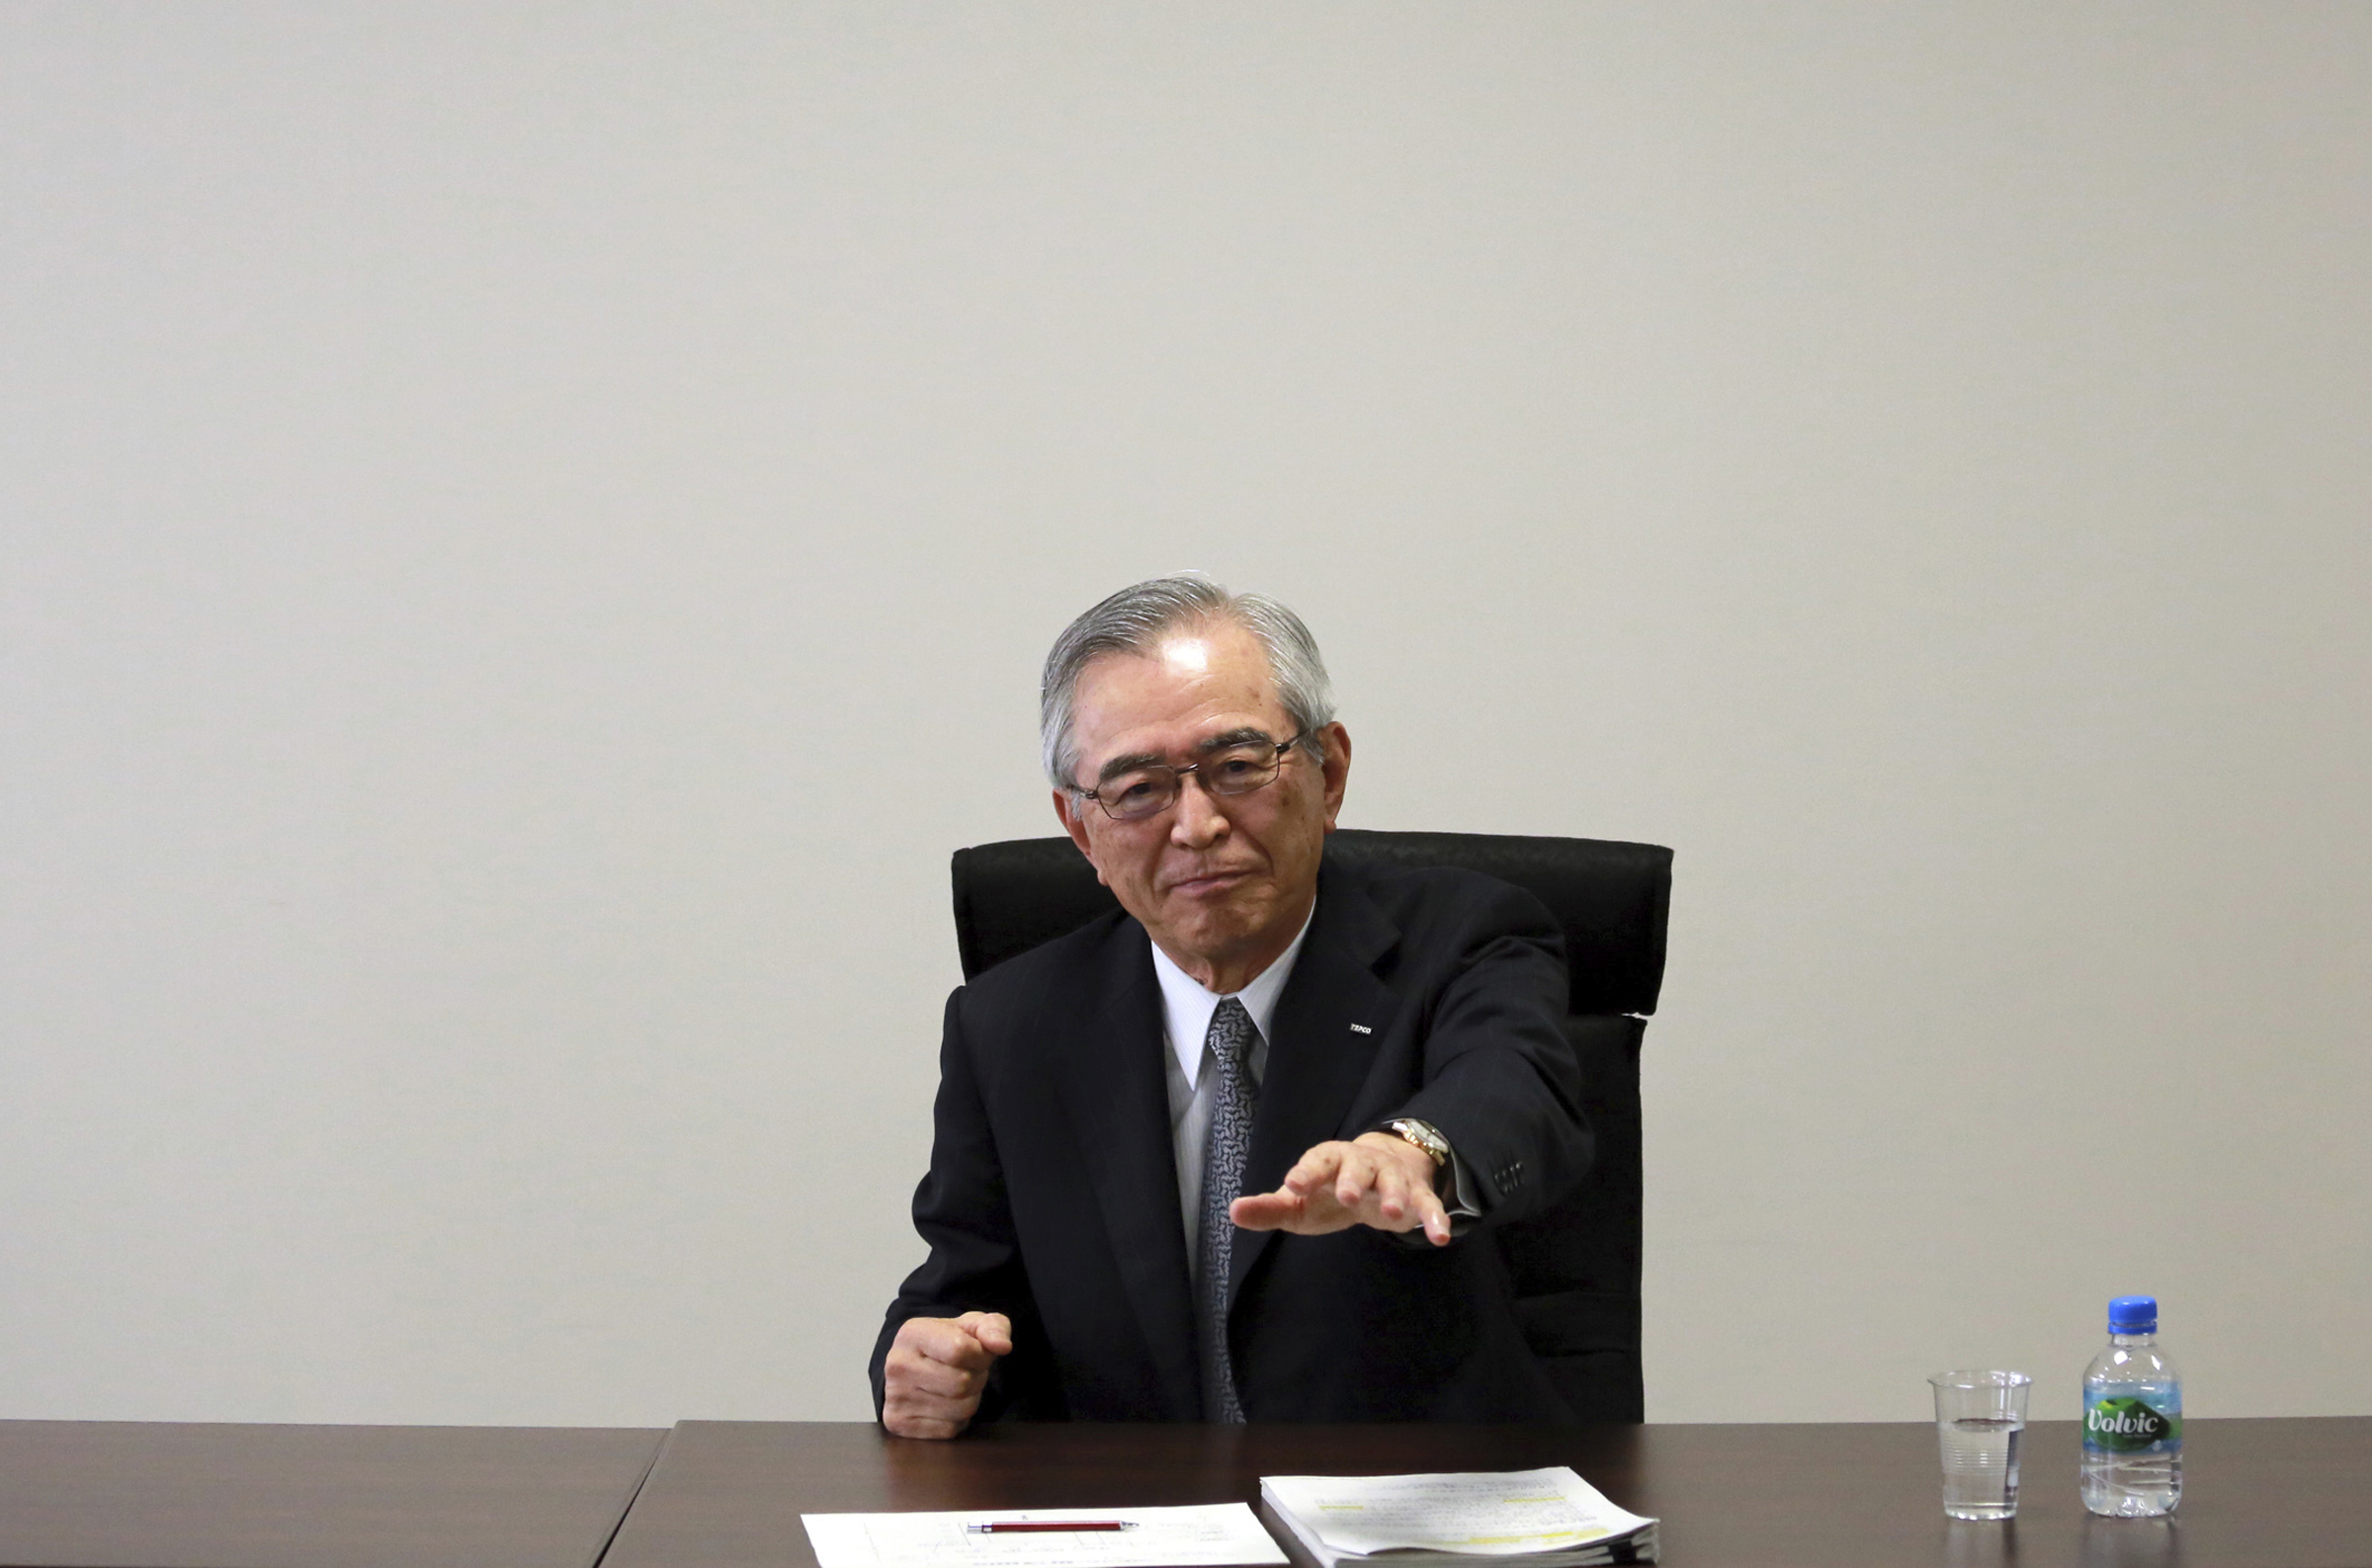 Japan Nuclear-5 Tokyo Electric Power Co.'s new Chairman Takashi Kawamura gestures while speaking during an interview at the TEPCO headquarters in Tokyo Thursday, July 13, 2017. Kawamura said the utility needs to stop dragging its feet on plans to dump massive amounts of treated but contaminated water into the sea and make more money if it's ever going to succeed in cleaning up the mess left by meltdowns more than six years ago at the tsunami-hit Fukushima nuclear power plant. (AP Photo/Eugene Hoshiko)